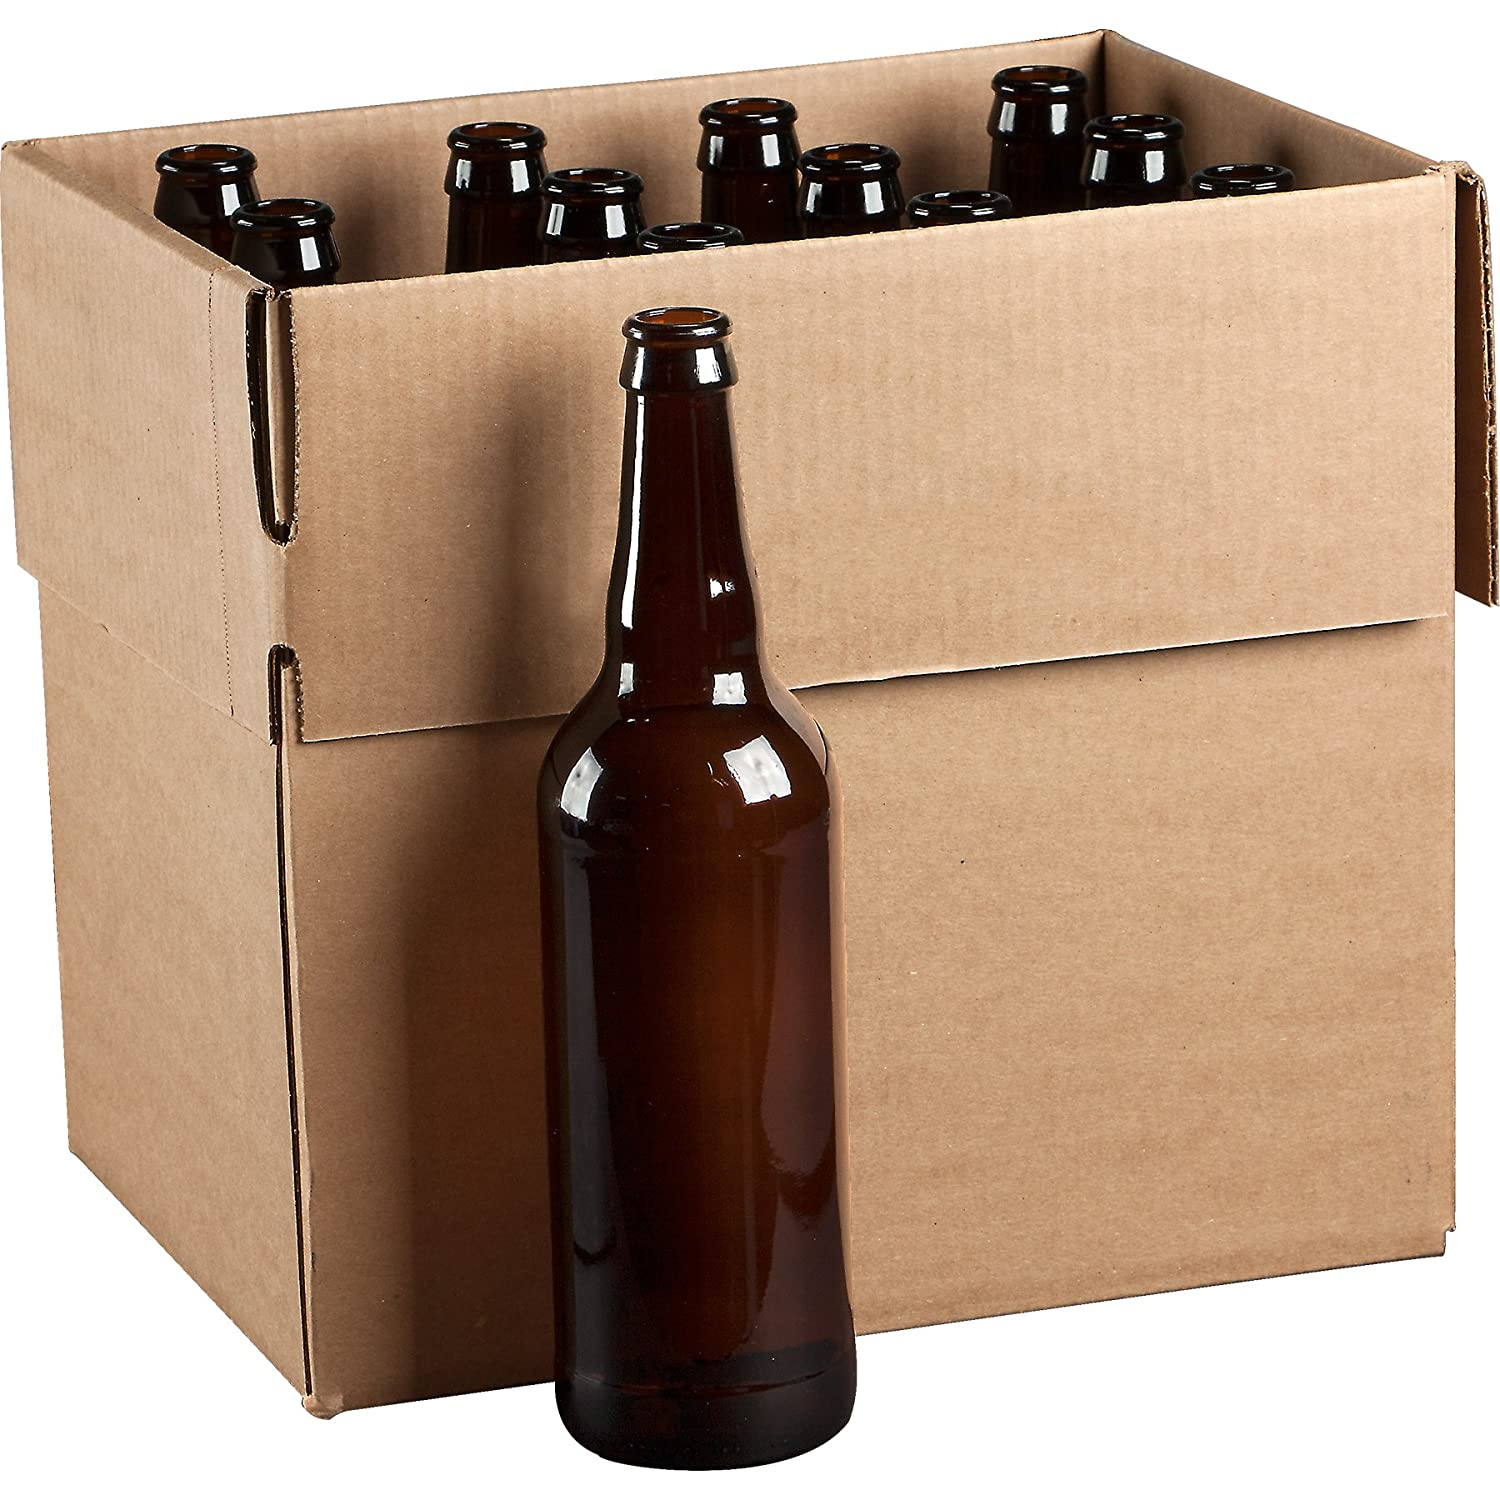 The Cary Company 30WBG2 22 oz. Bomber GLASS Beer Bottles, Pry-Off, Amber (Pack of 12)